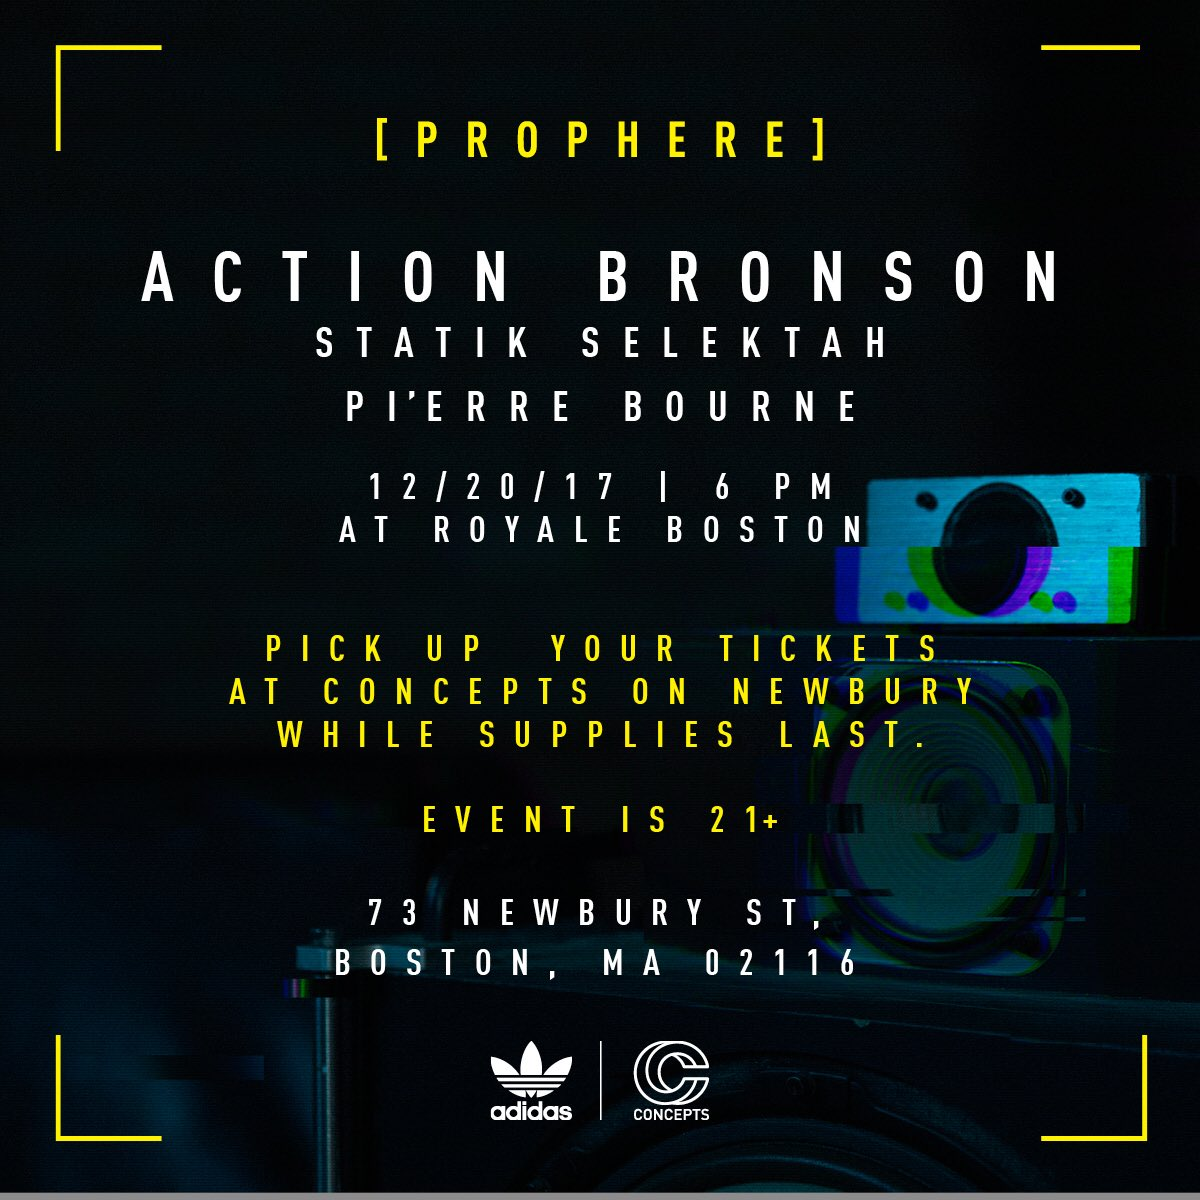 Free show at Royale in Boston on 12/20. Pick up your tickets @cncpts  @adidasoriginals  #Prophere https://t.co/AwSNZzJWaV